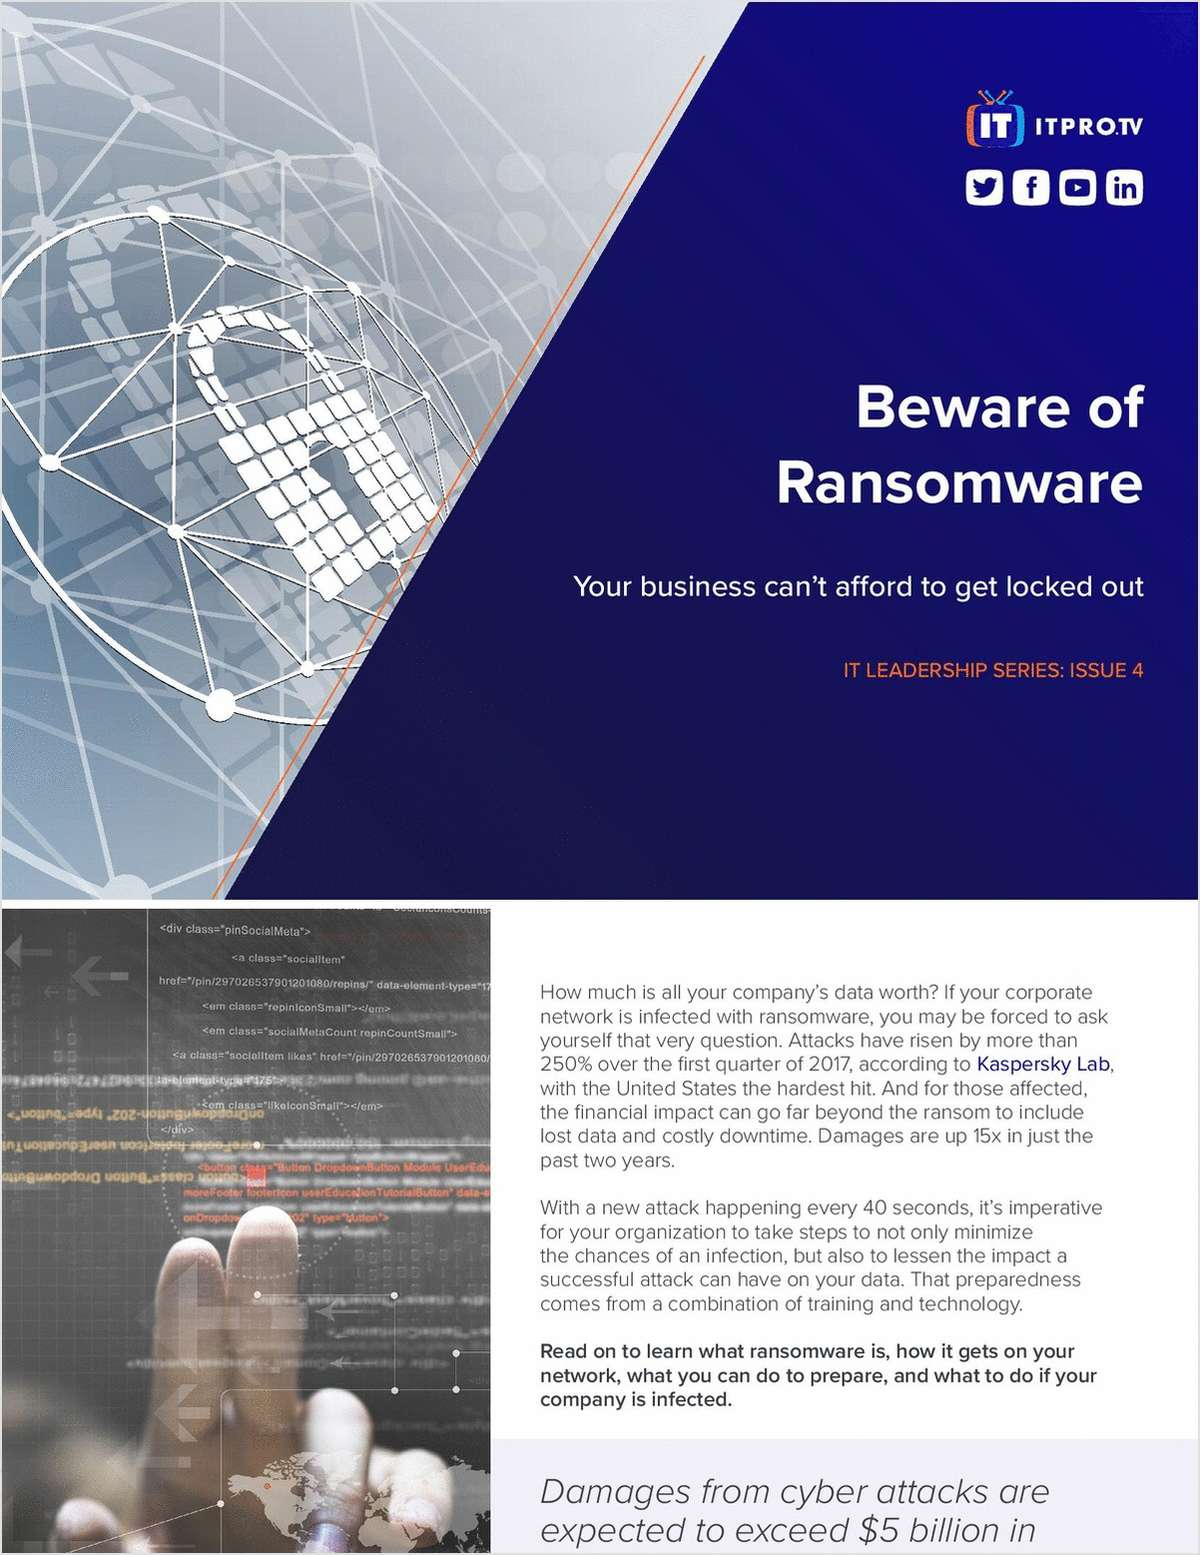 Beware of Ransomware - Your Business Can't Afford to Get Locked Out